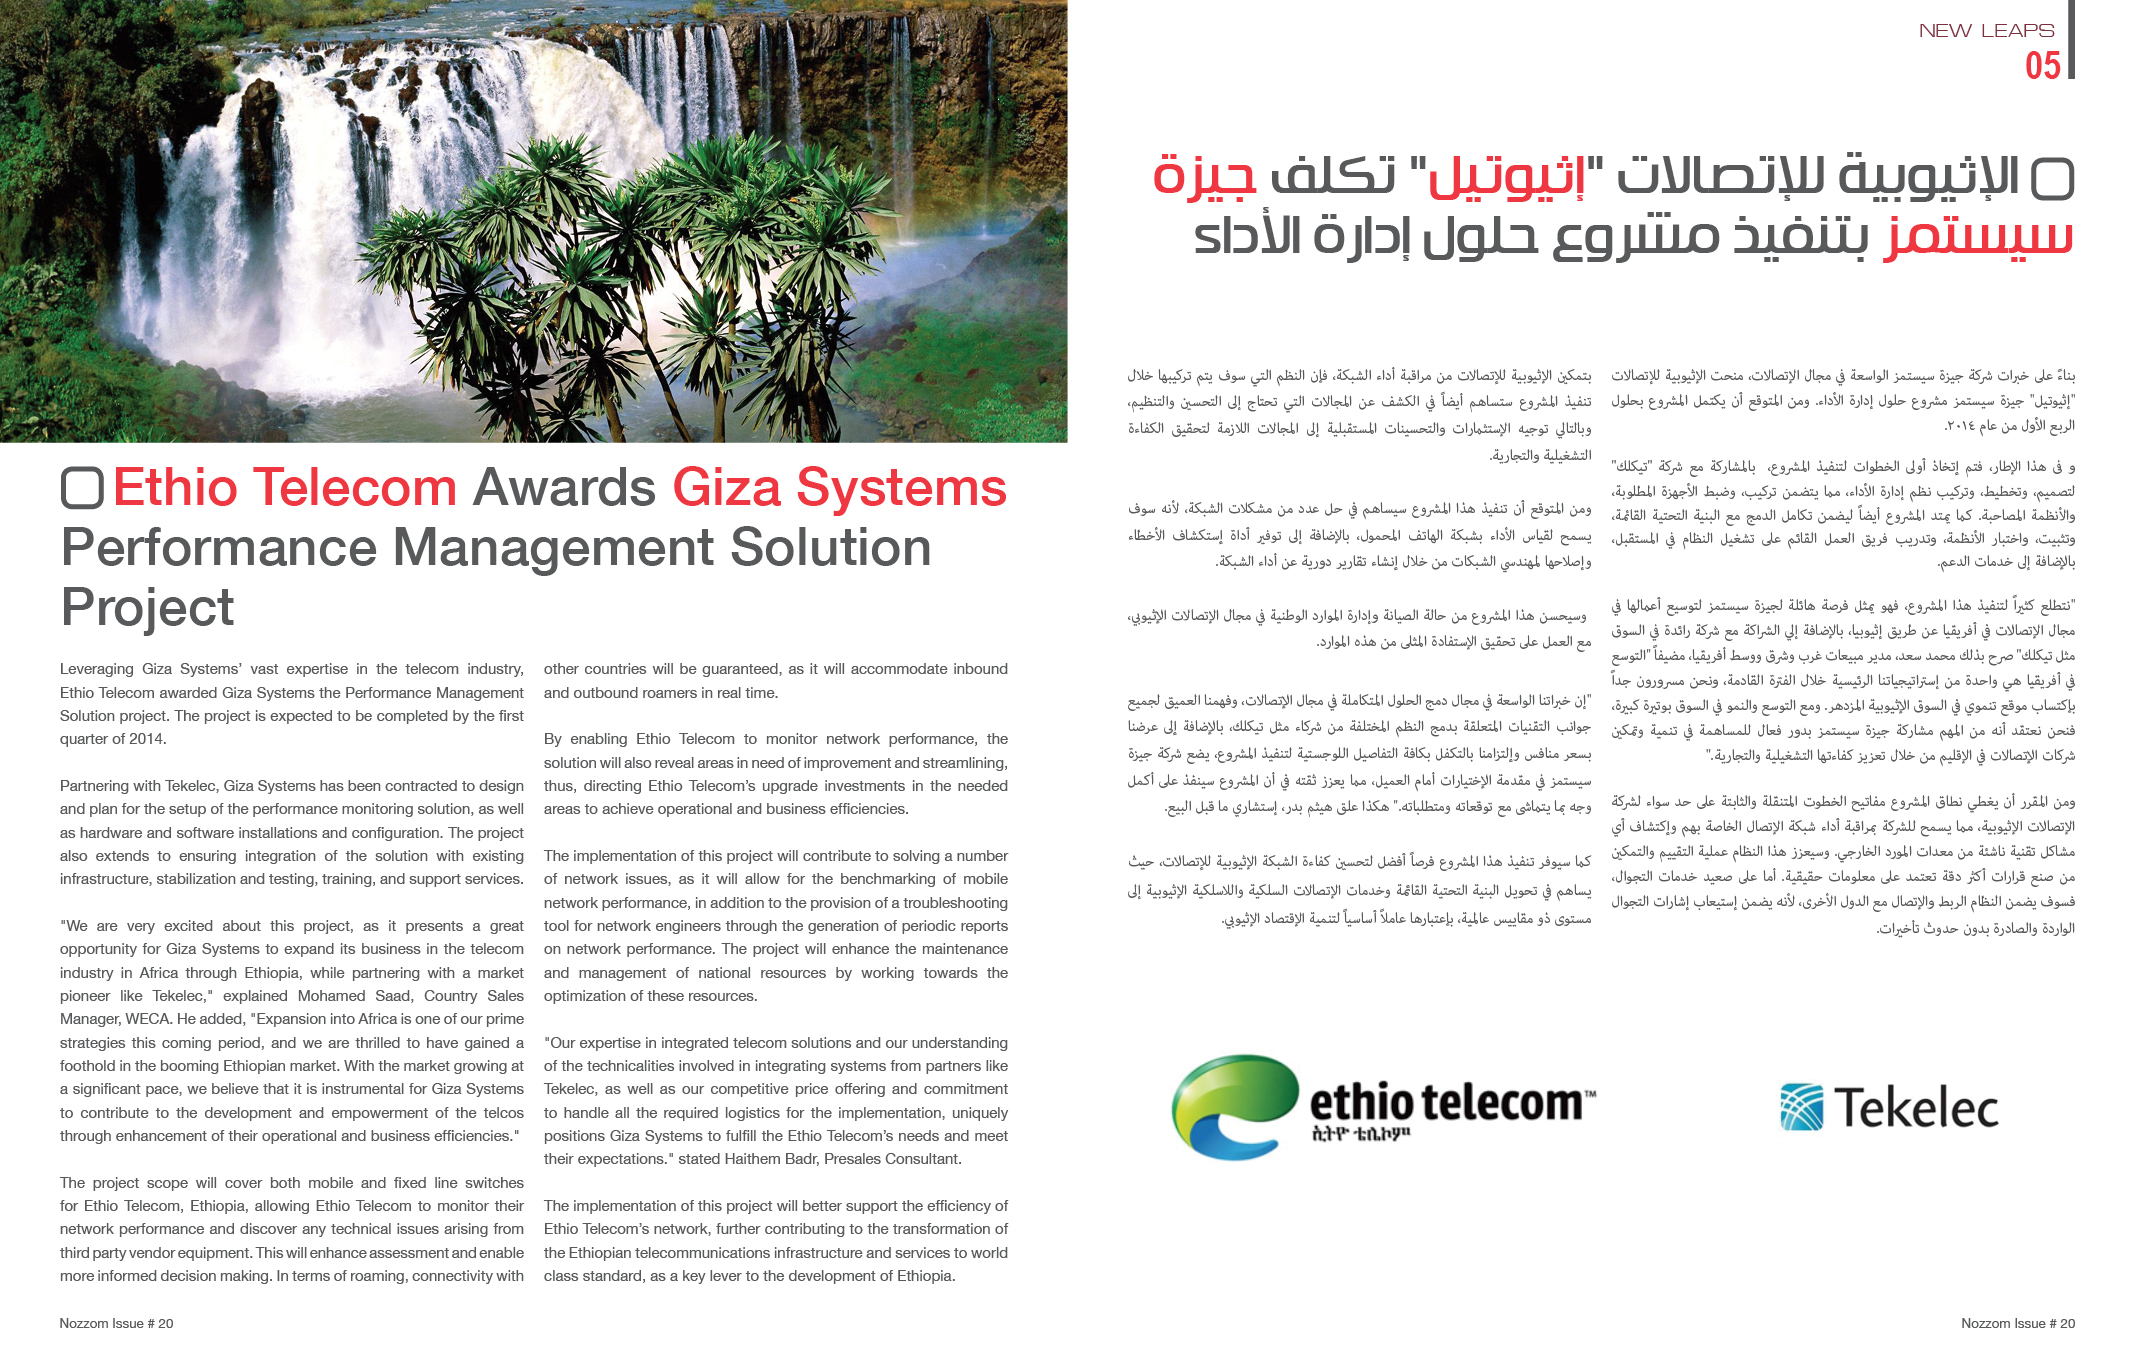 Ethio Telecom Awards Giza Systems Performance Management Solution